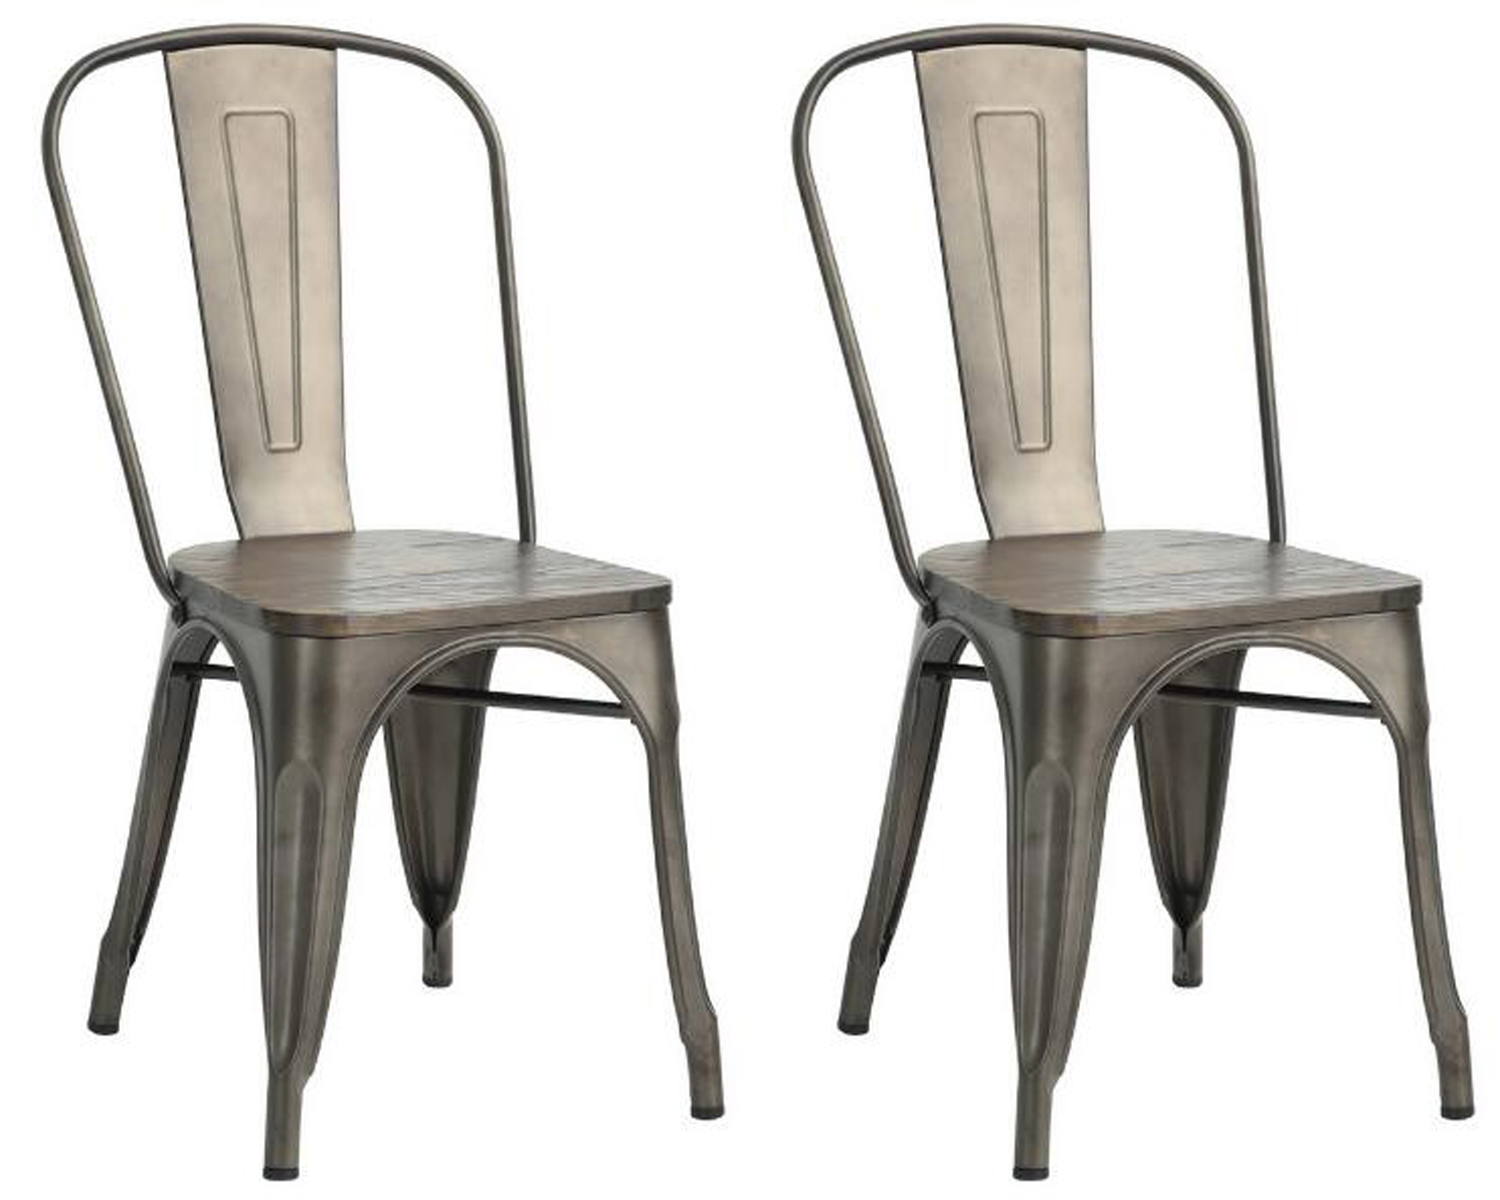 2 Tolix Rustic Metal Wooden Retro 1930s Style Cafe Bistro Kitchen Dining Chairs